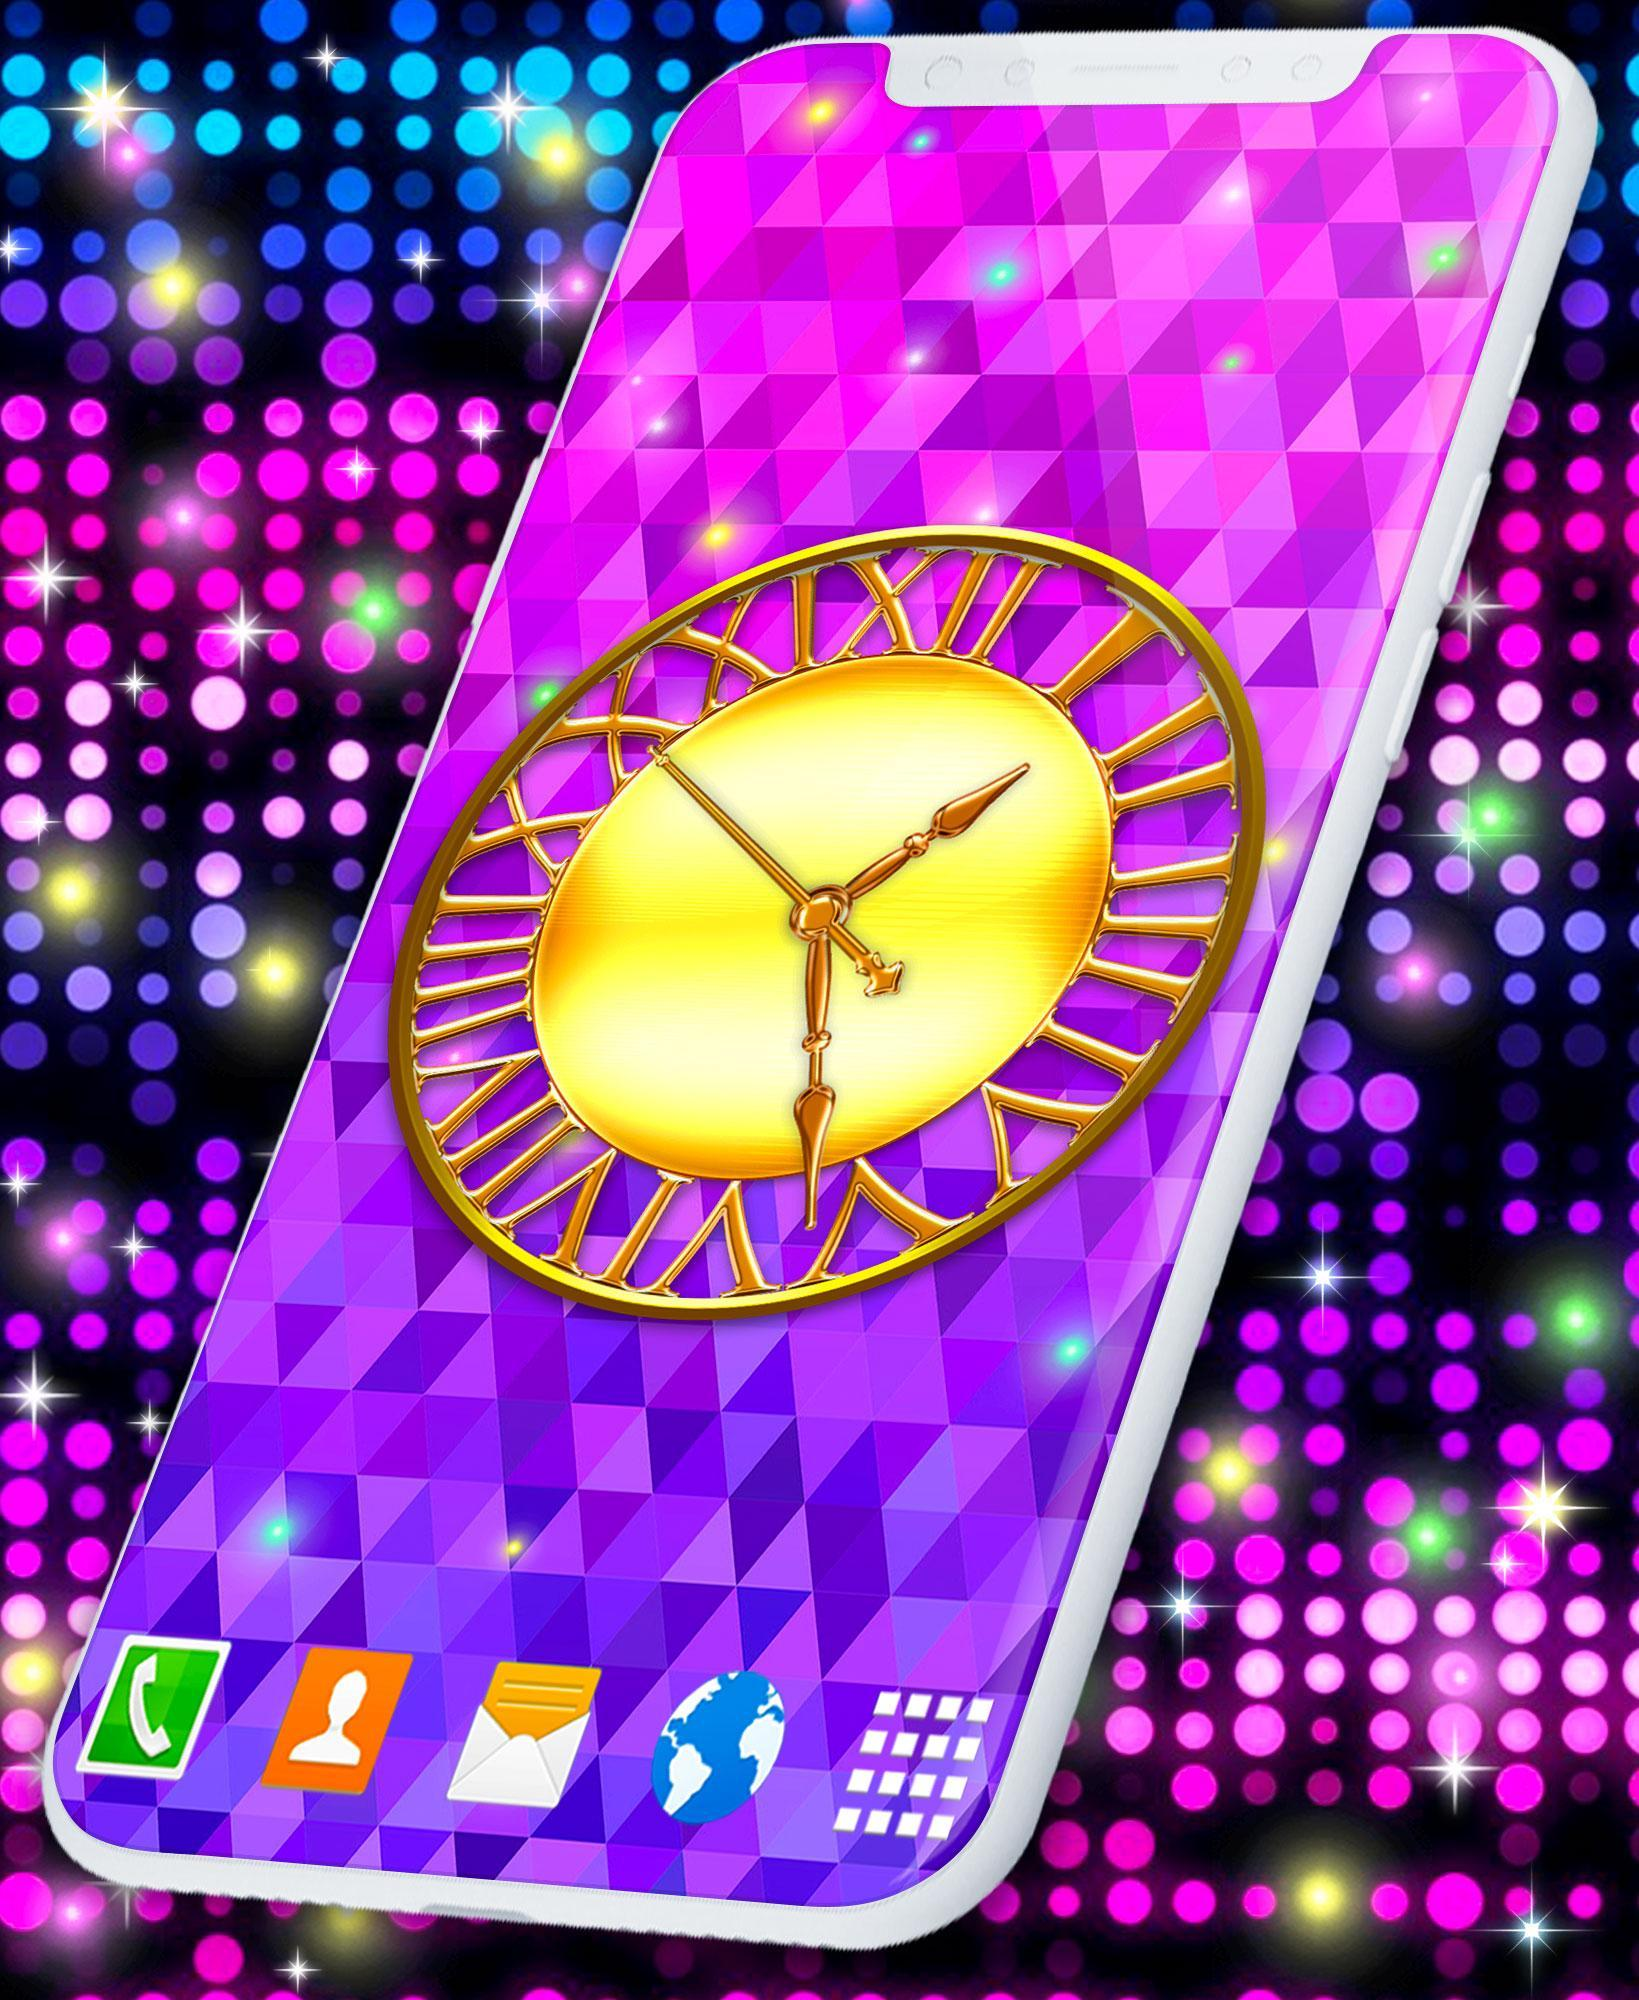 New Live Wallpaper 2020 Best Sparkly Wallpapers For Android Apk Download